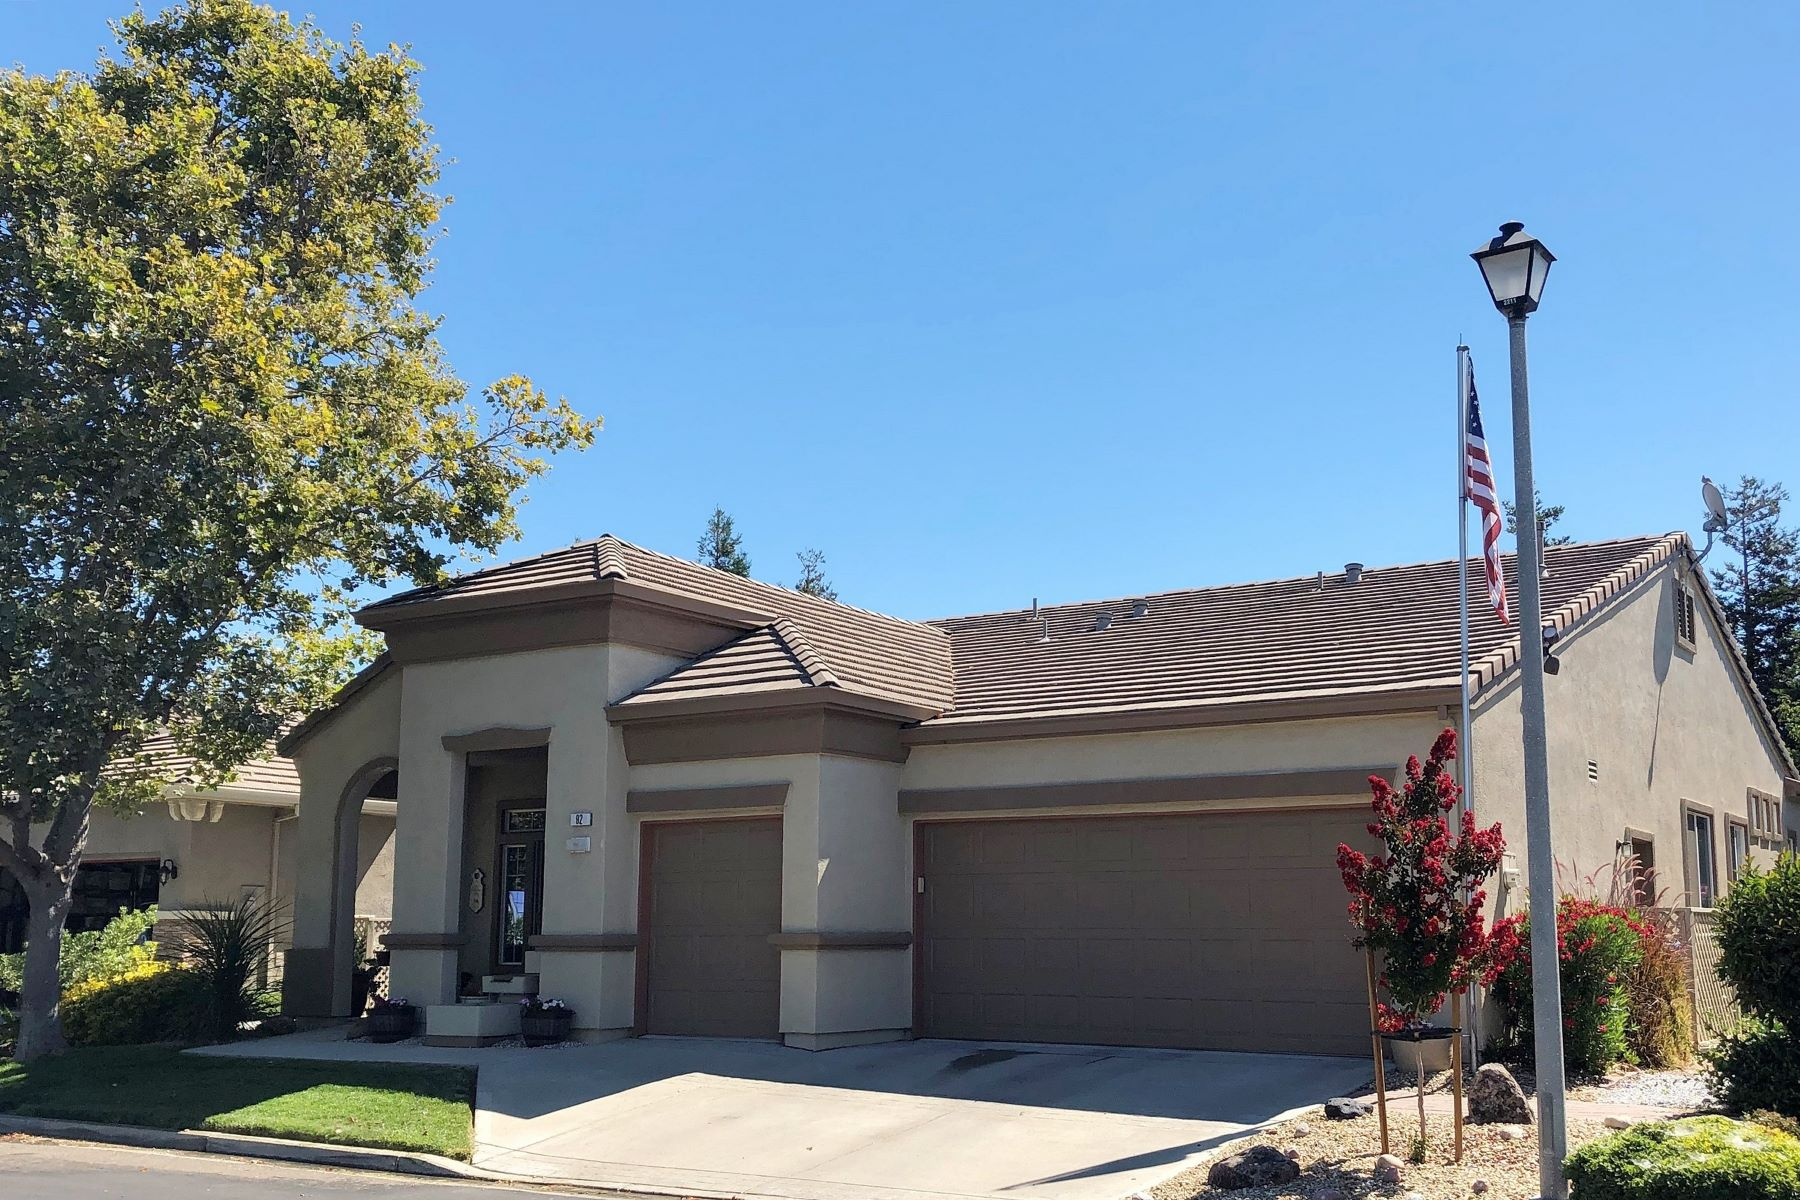 Single Family Homes for Sale at Summerset Beauty 92 Liberty Lane Brentwood, California 94513 United States